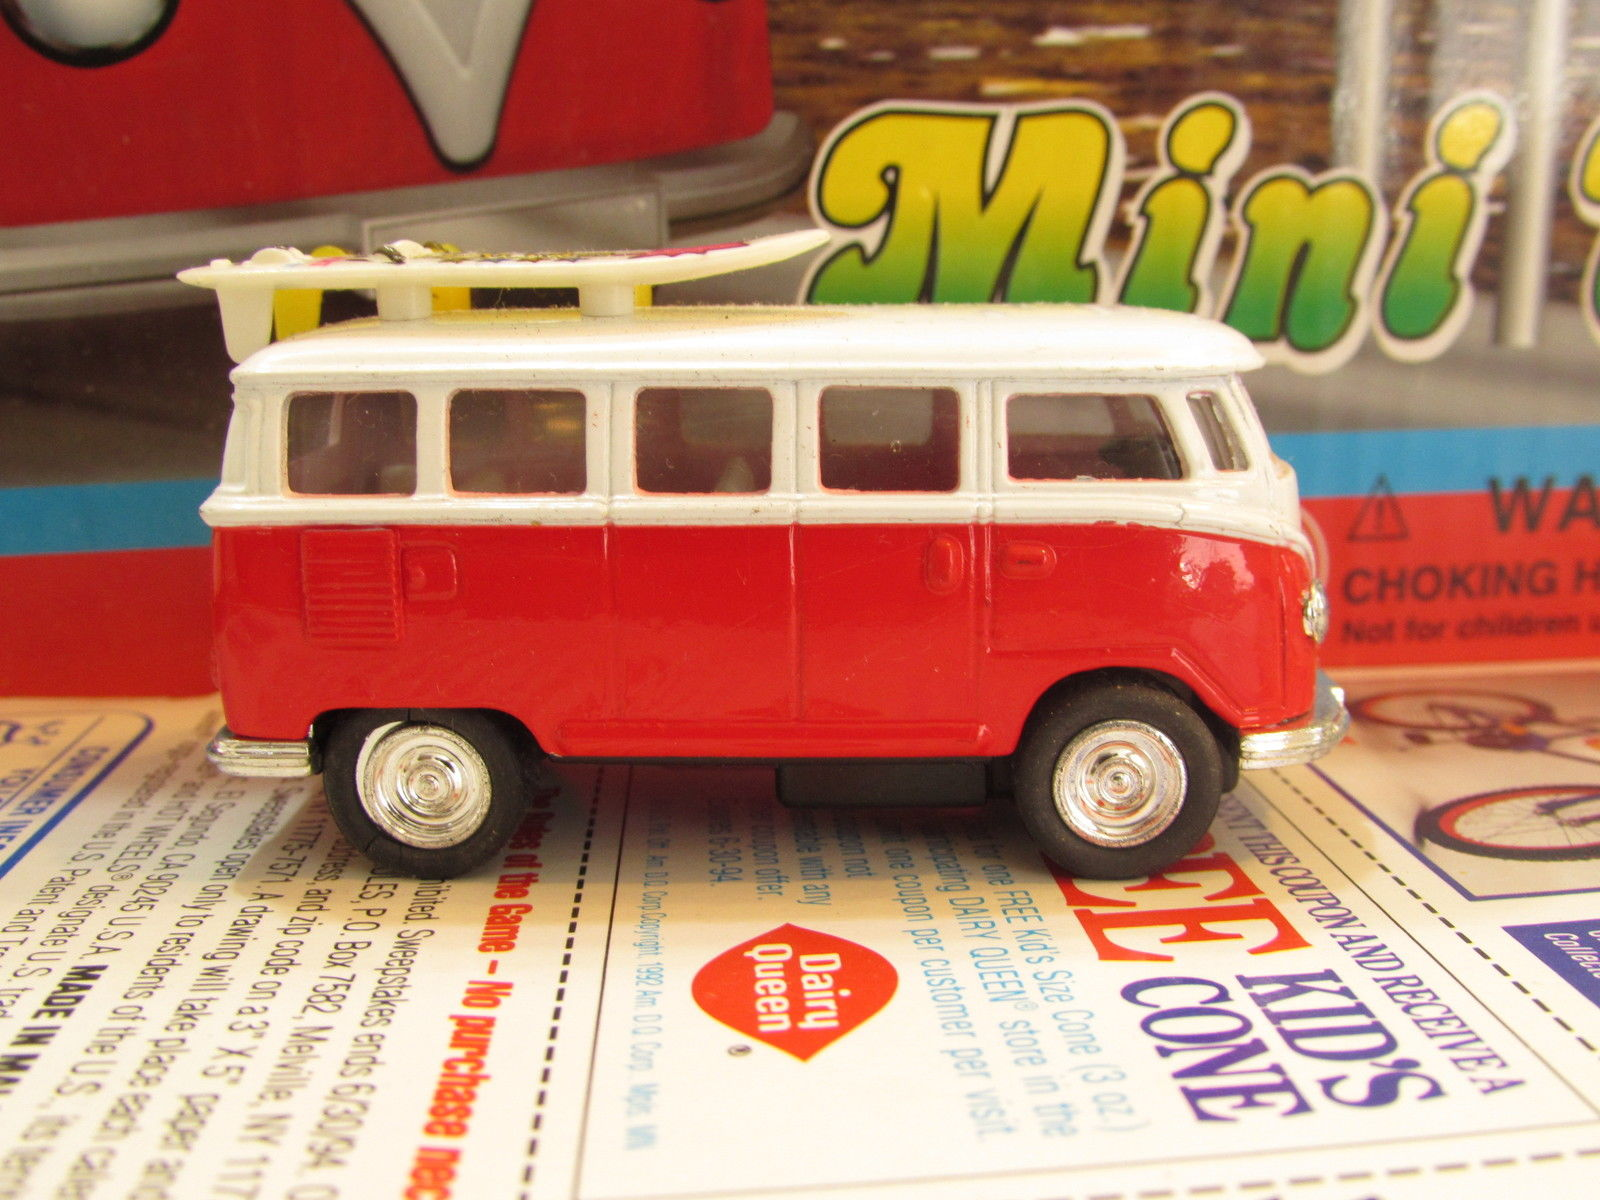 1993 KINTOY DIE CAST METAL MINI VAN - BUS W/ SURFBOARDS RED LOOSE